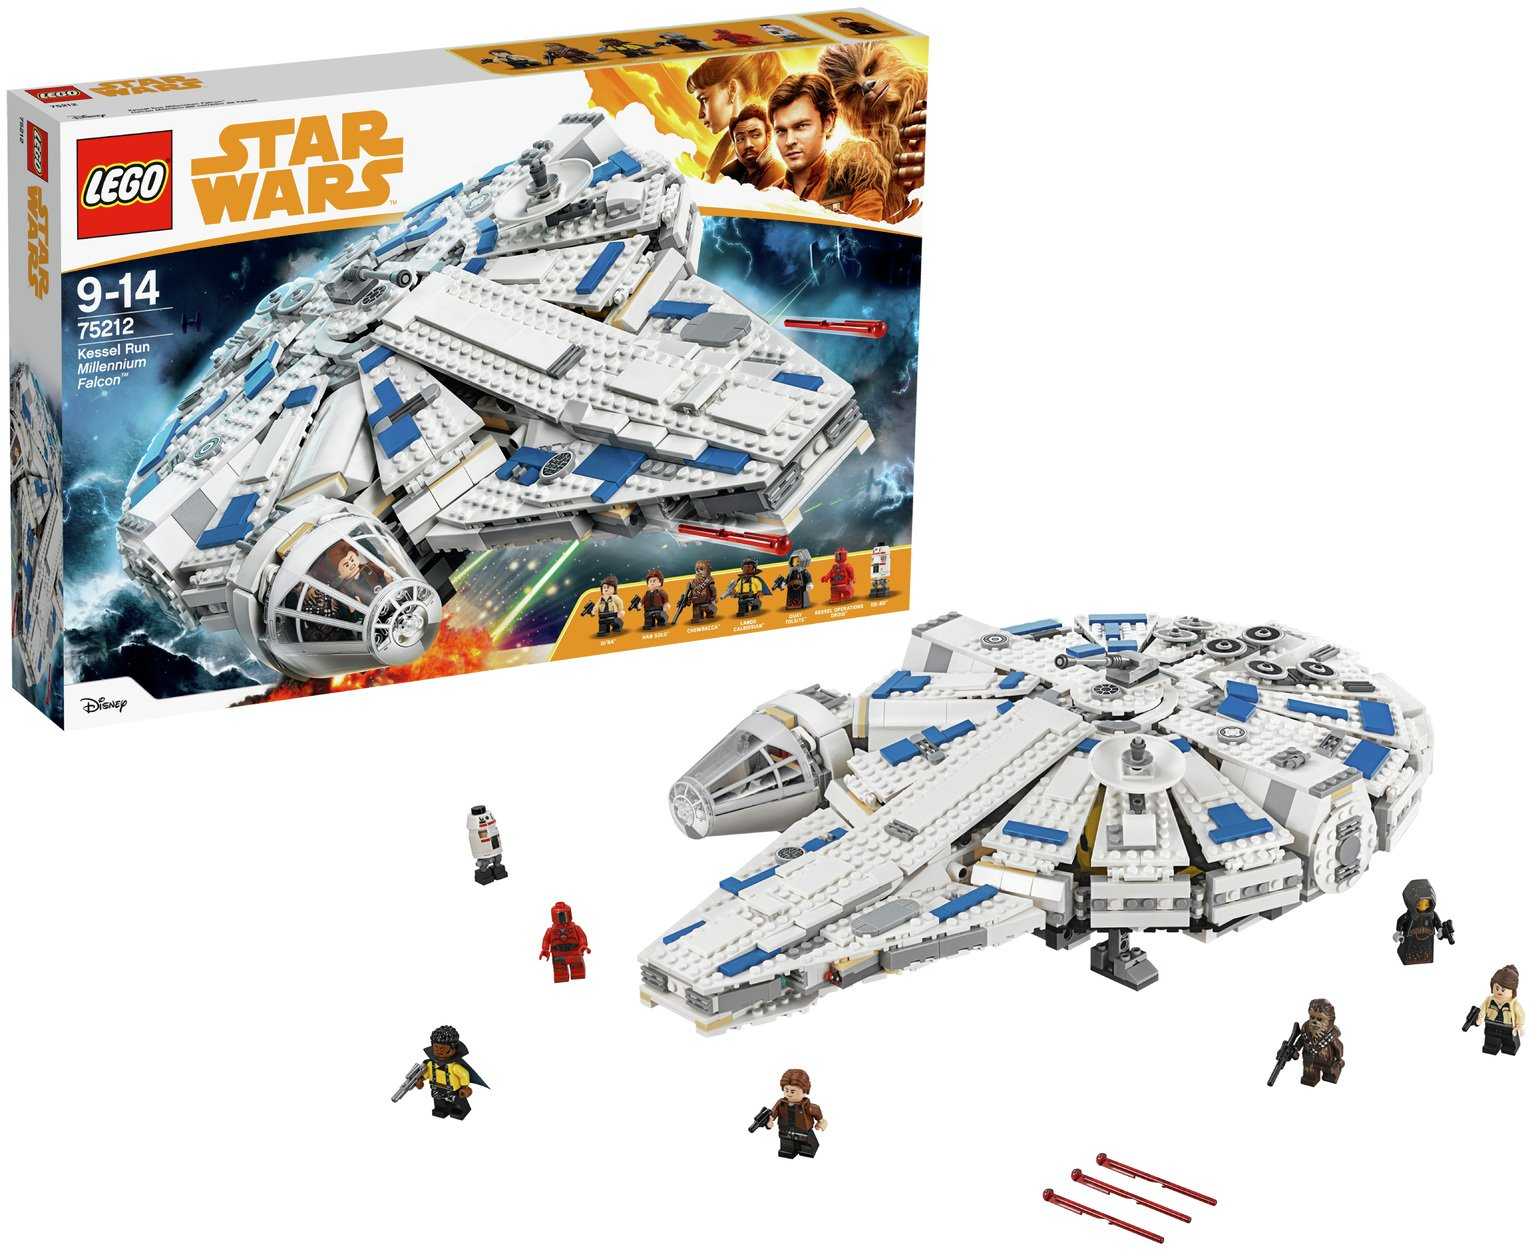 Image of LEGO Star Wars Kessel Run Millennium Falcon - 75212